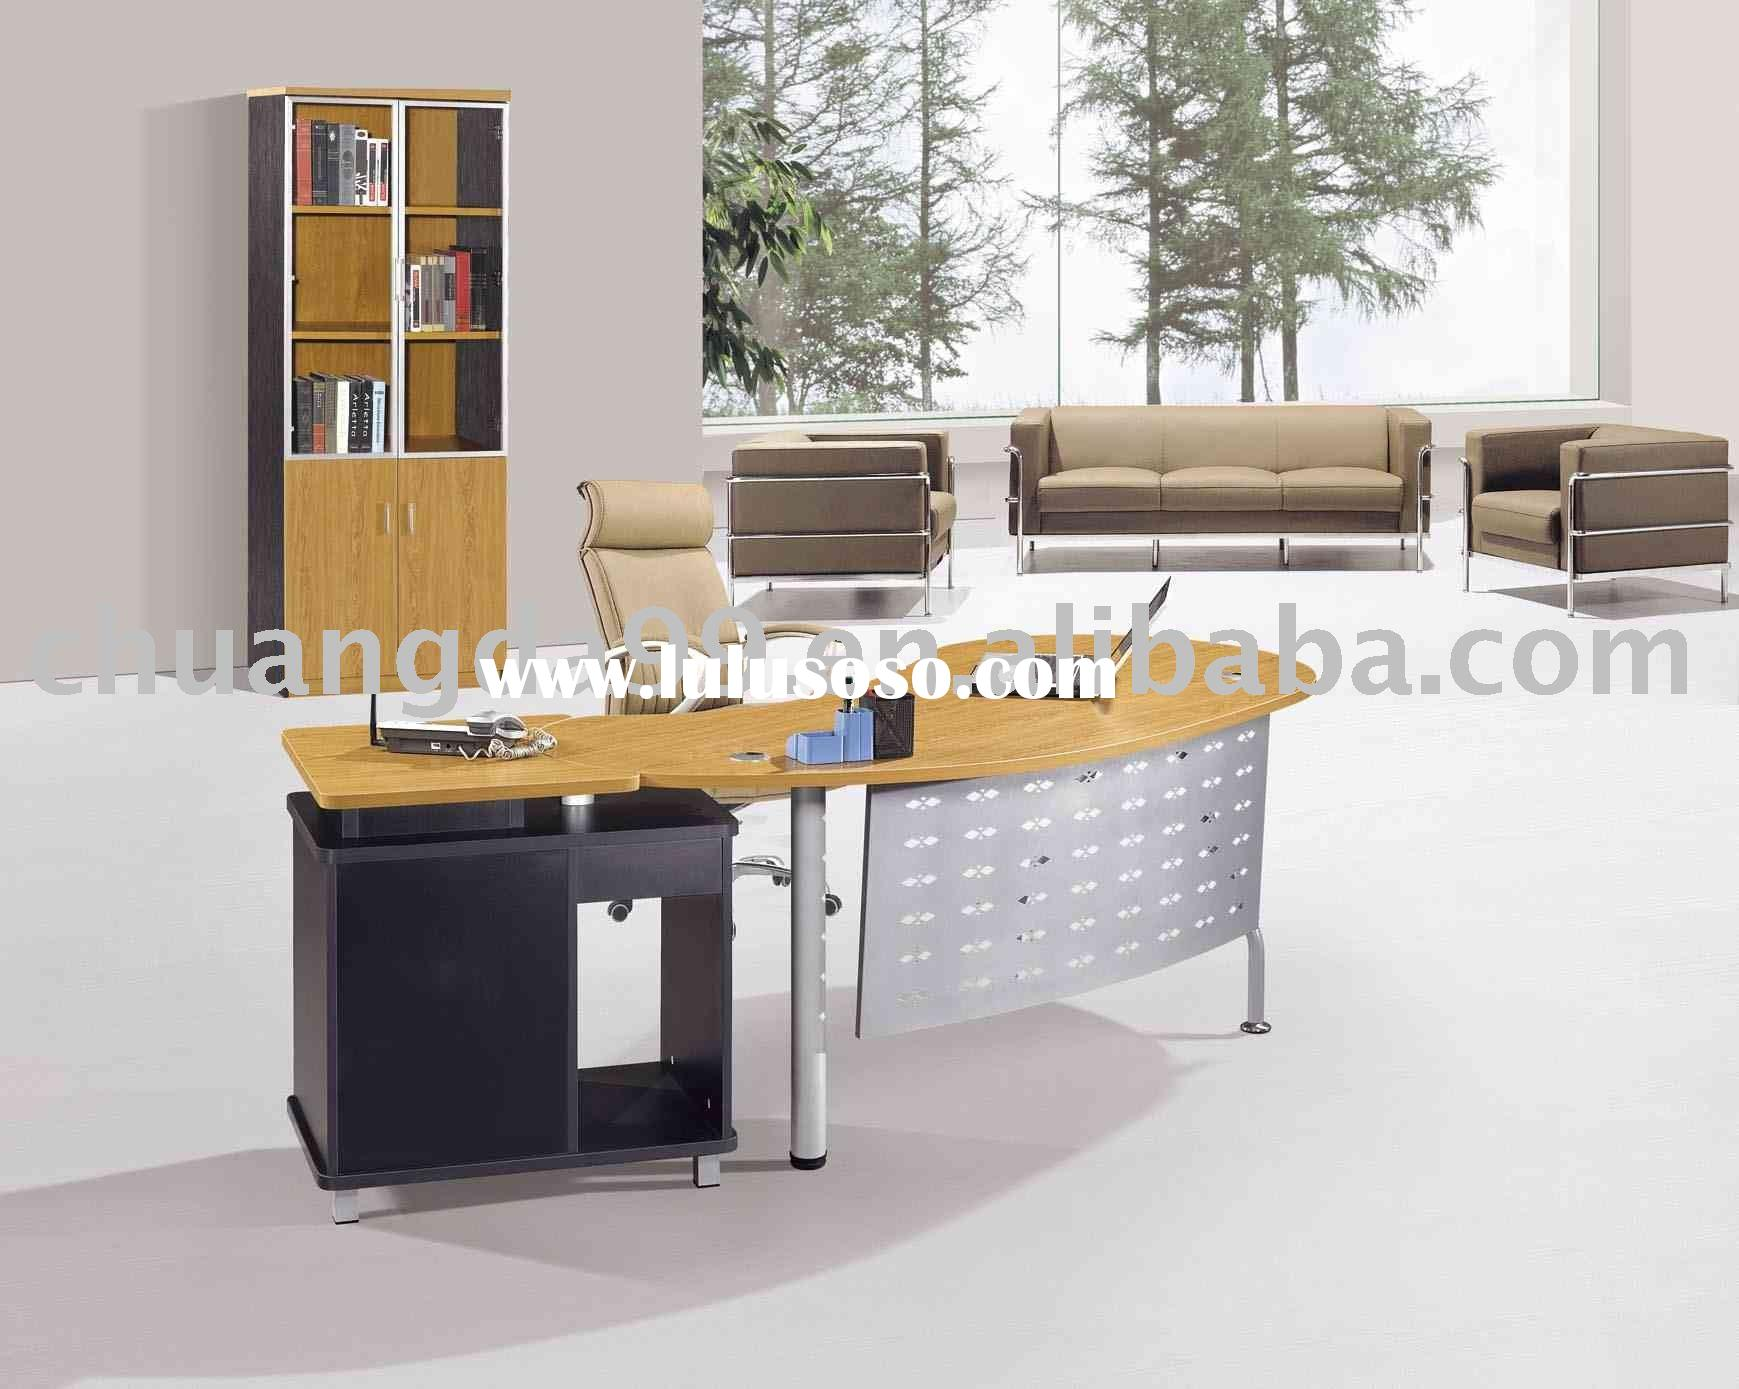 national office furniture liquidators chicago trend home